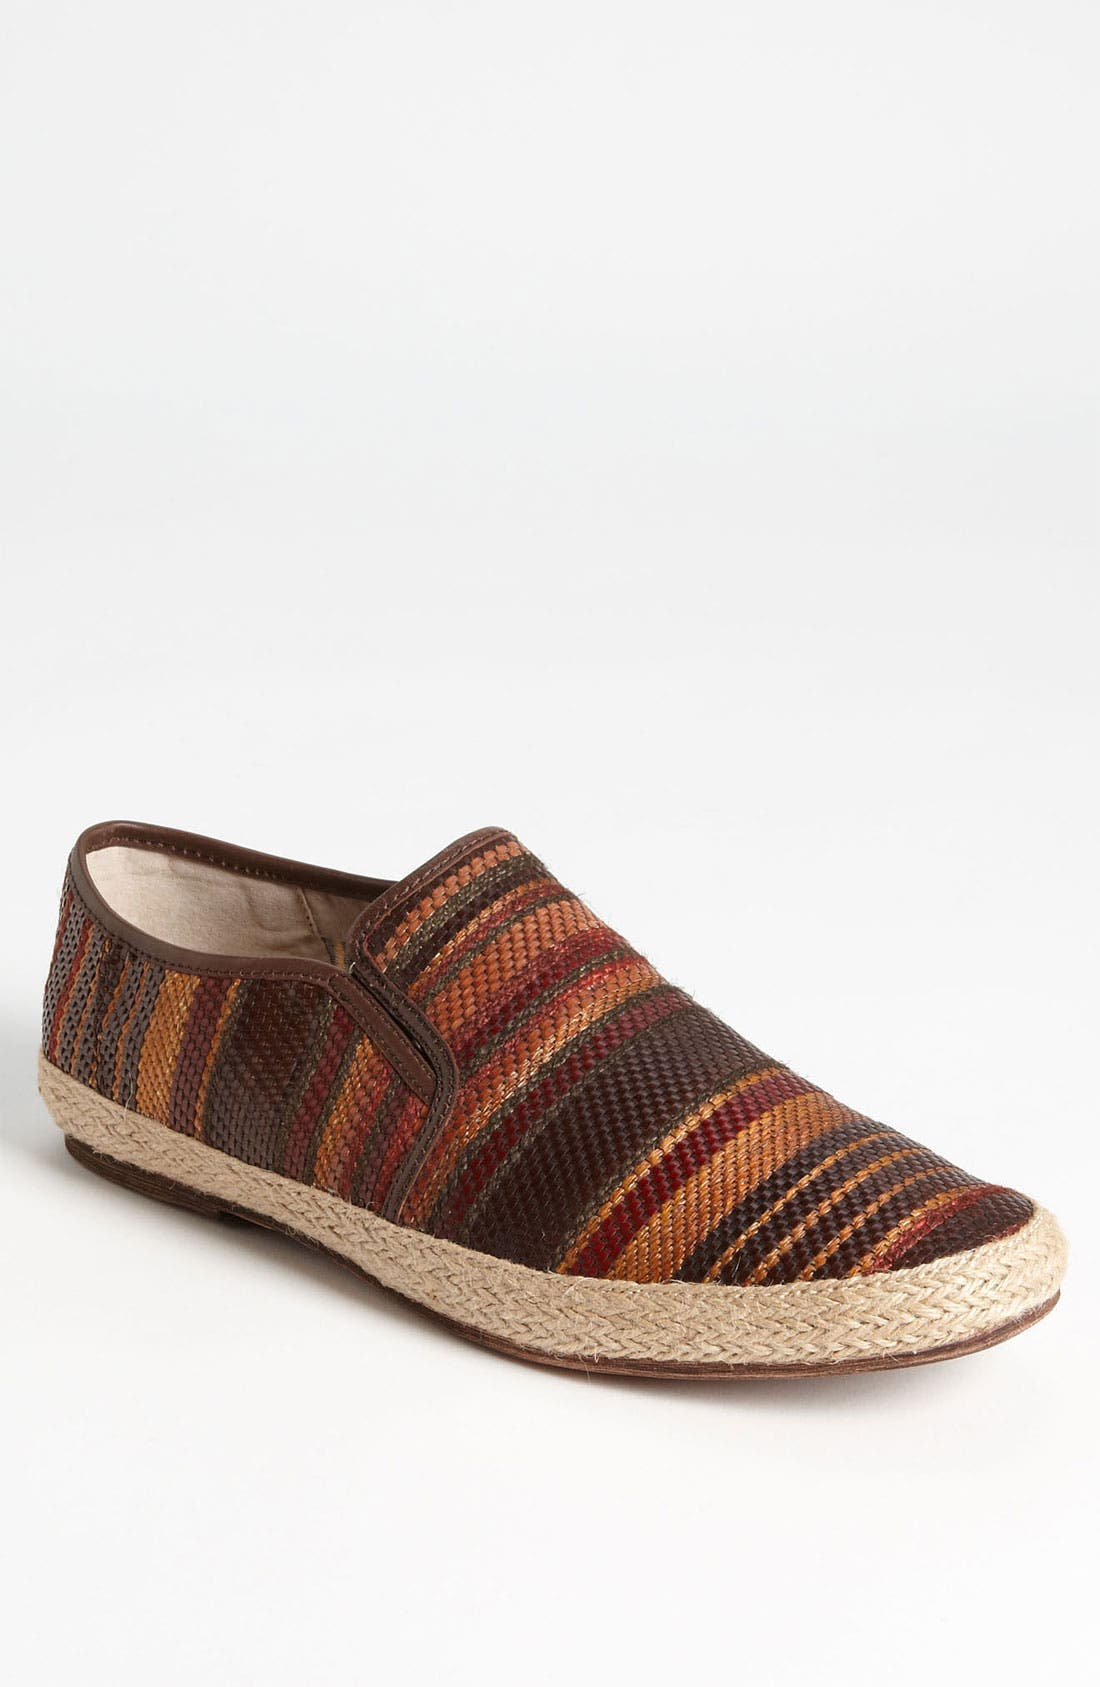 Main Image - Kenneth Cole New York 'Got 2 Be-Weave' Slip-On